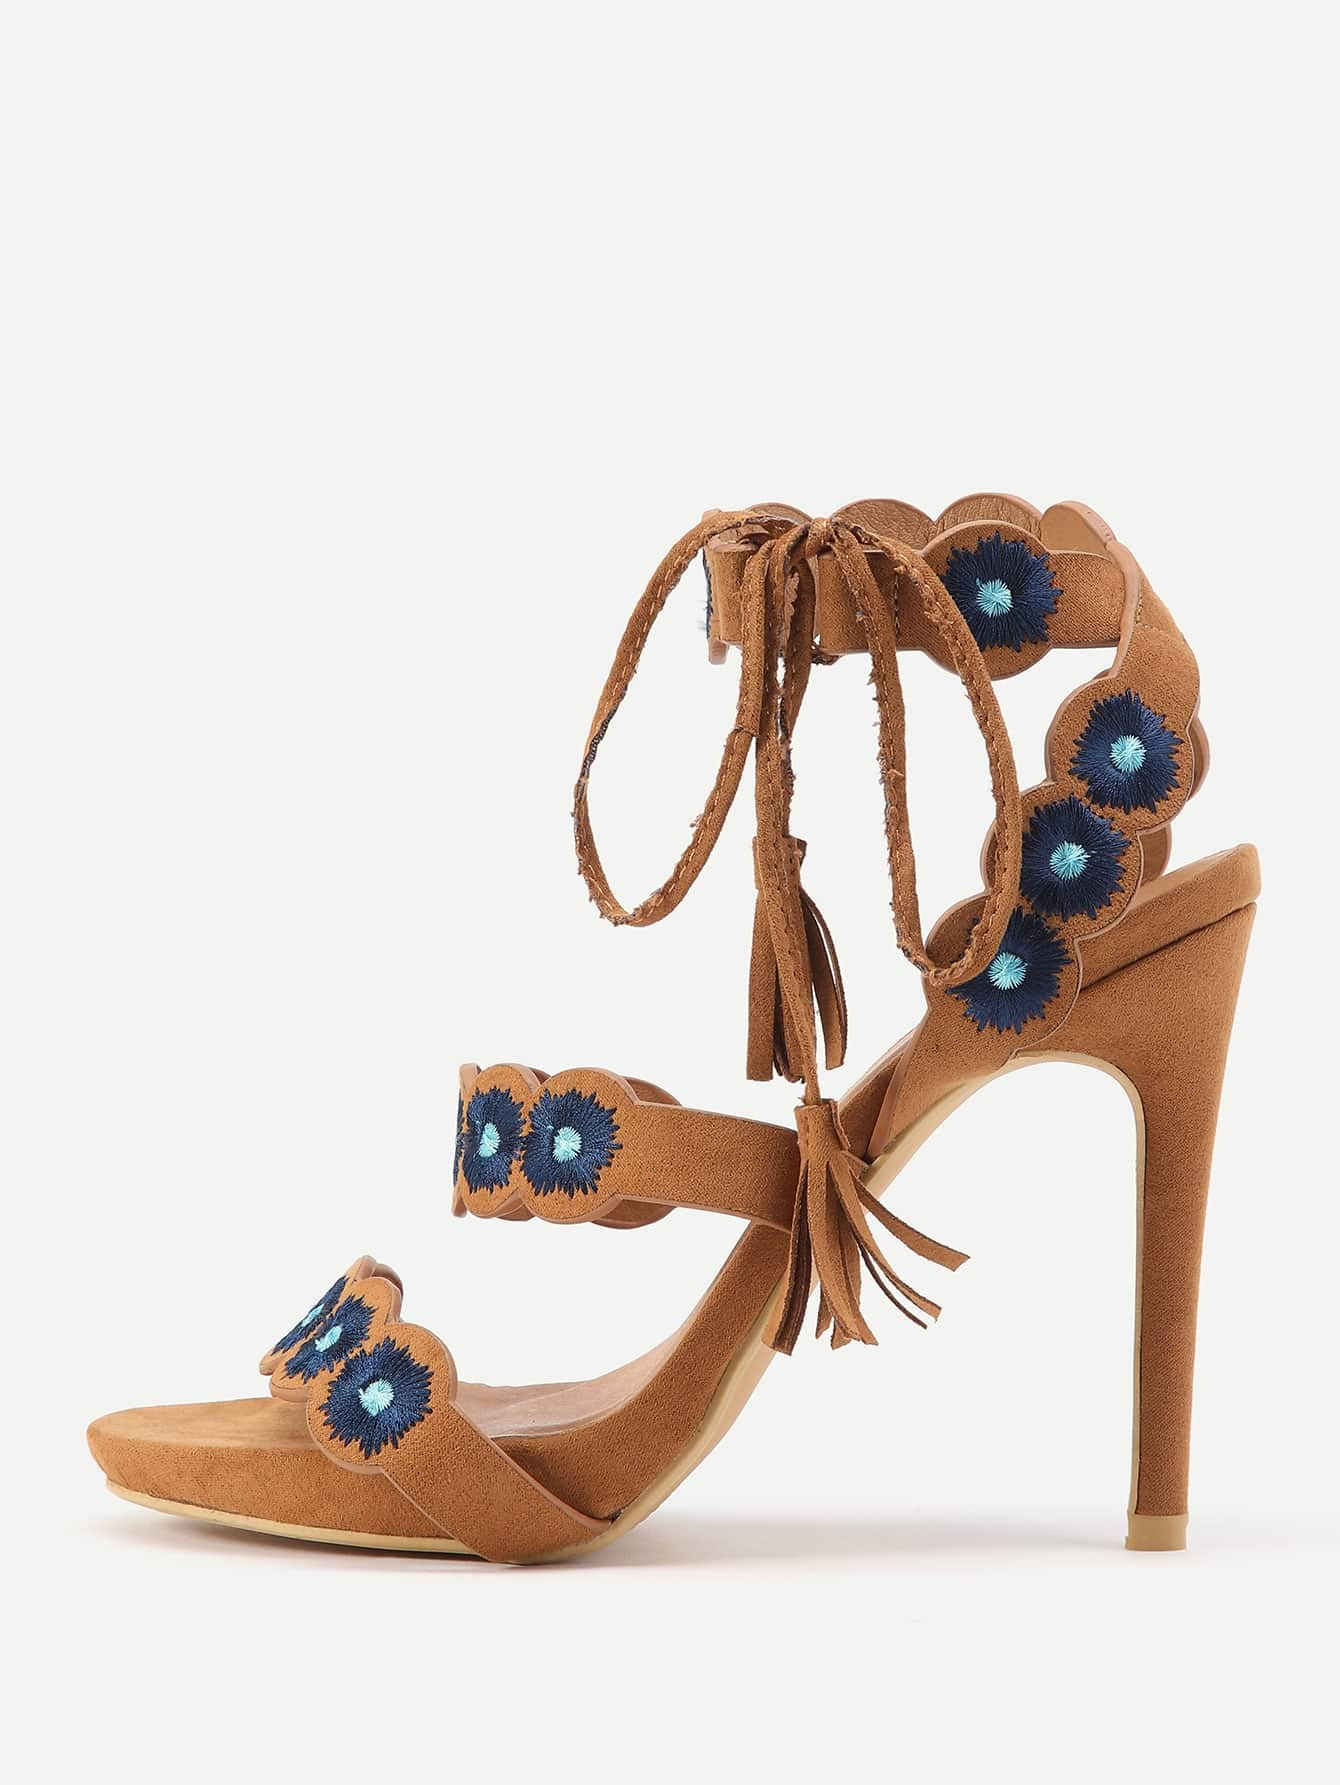 Peep Toe Embroidery High Heeled Sandals With Tassel Tie shoes17030102